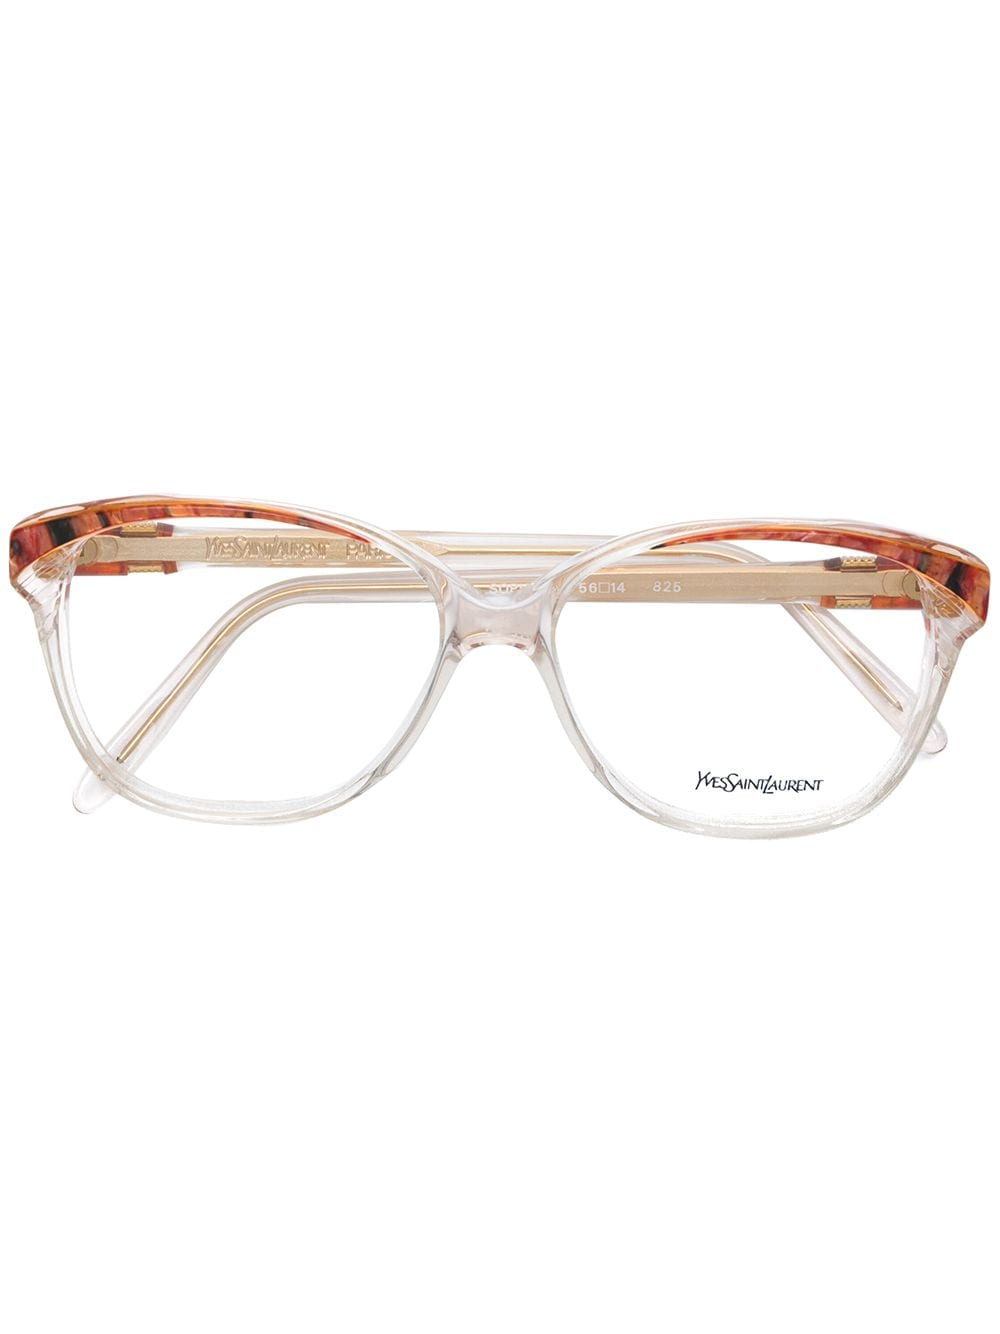 Yves Saint Laurent Pre-Owned Brille mit meliertem Gestell - Nude von Yves Saint Laurent Pre-Owned